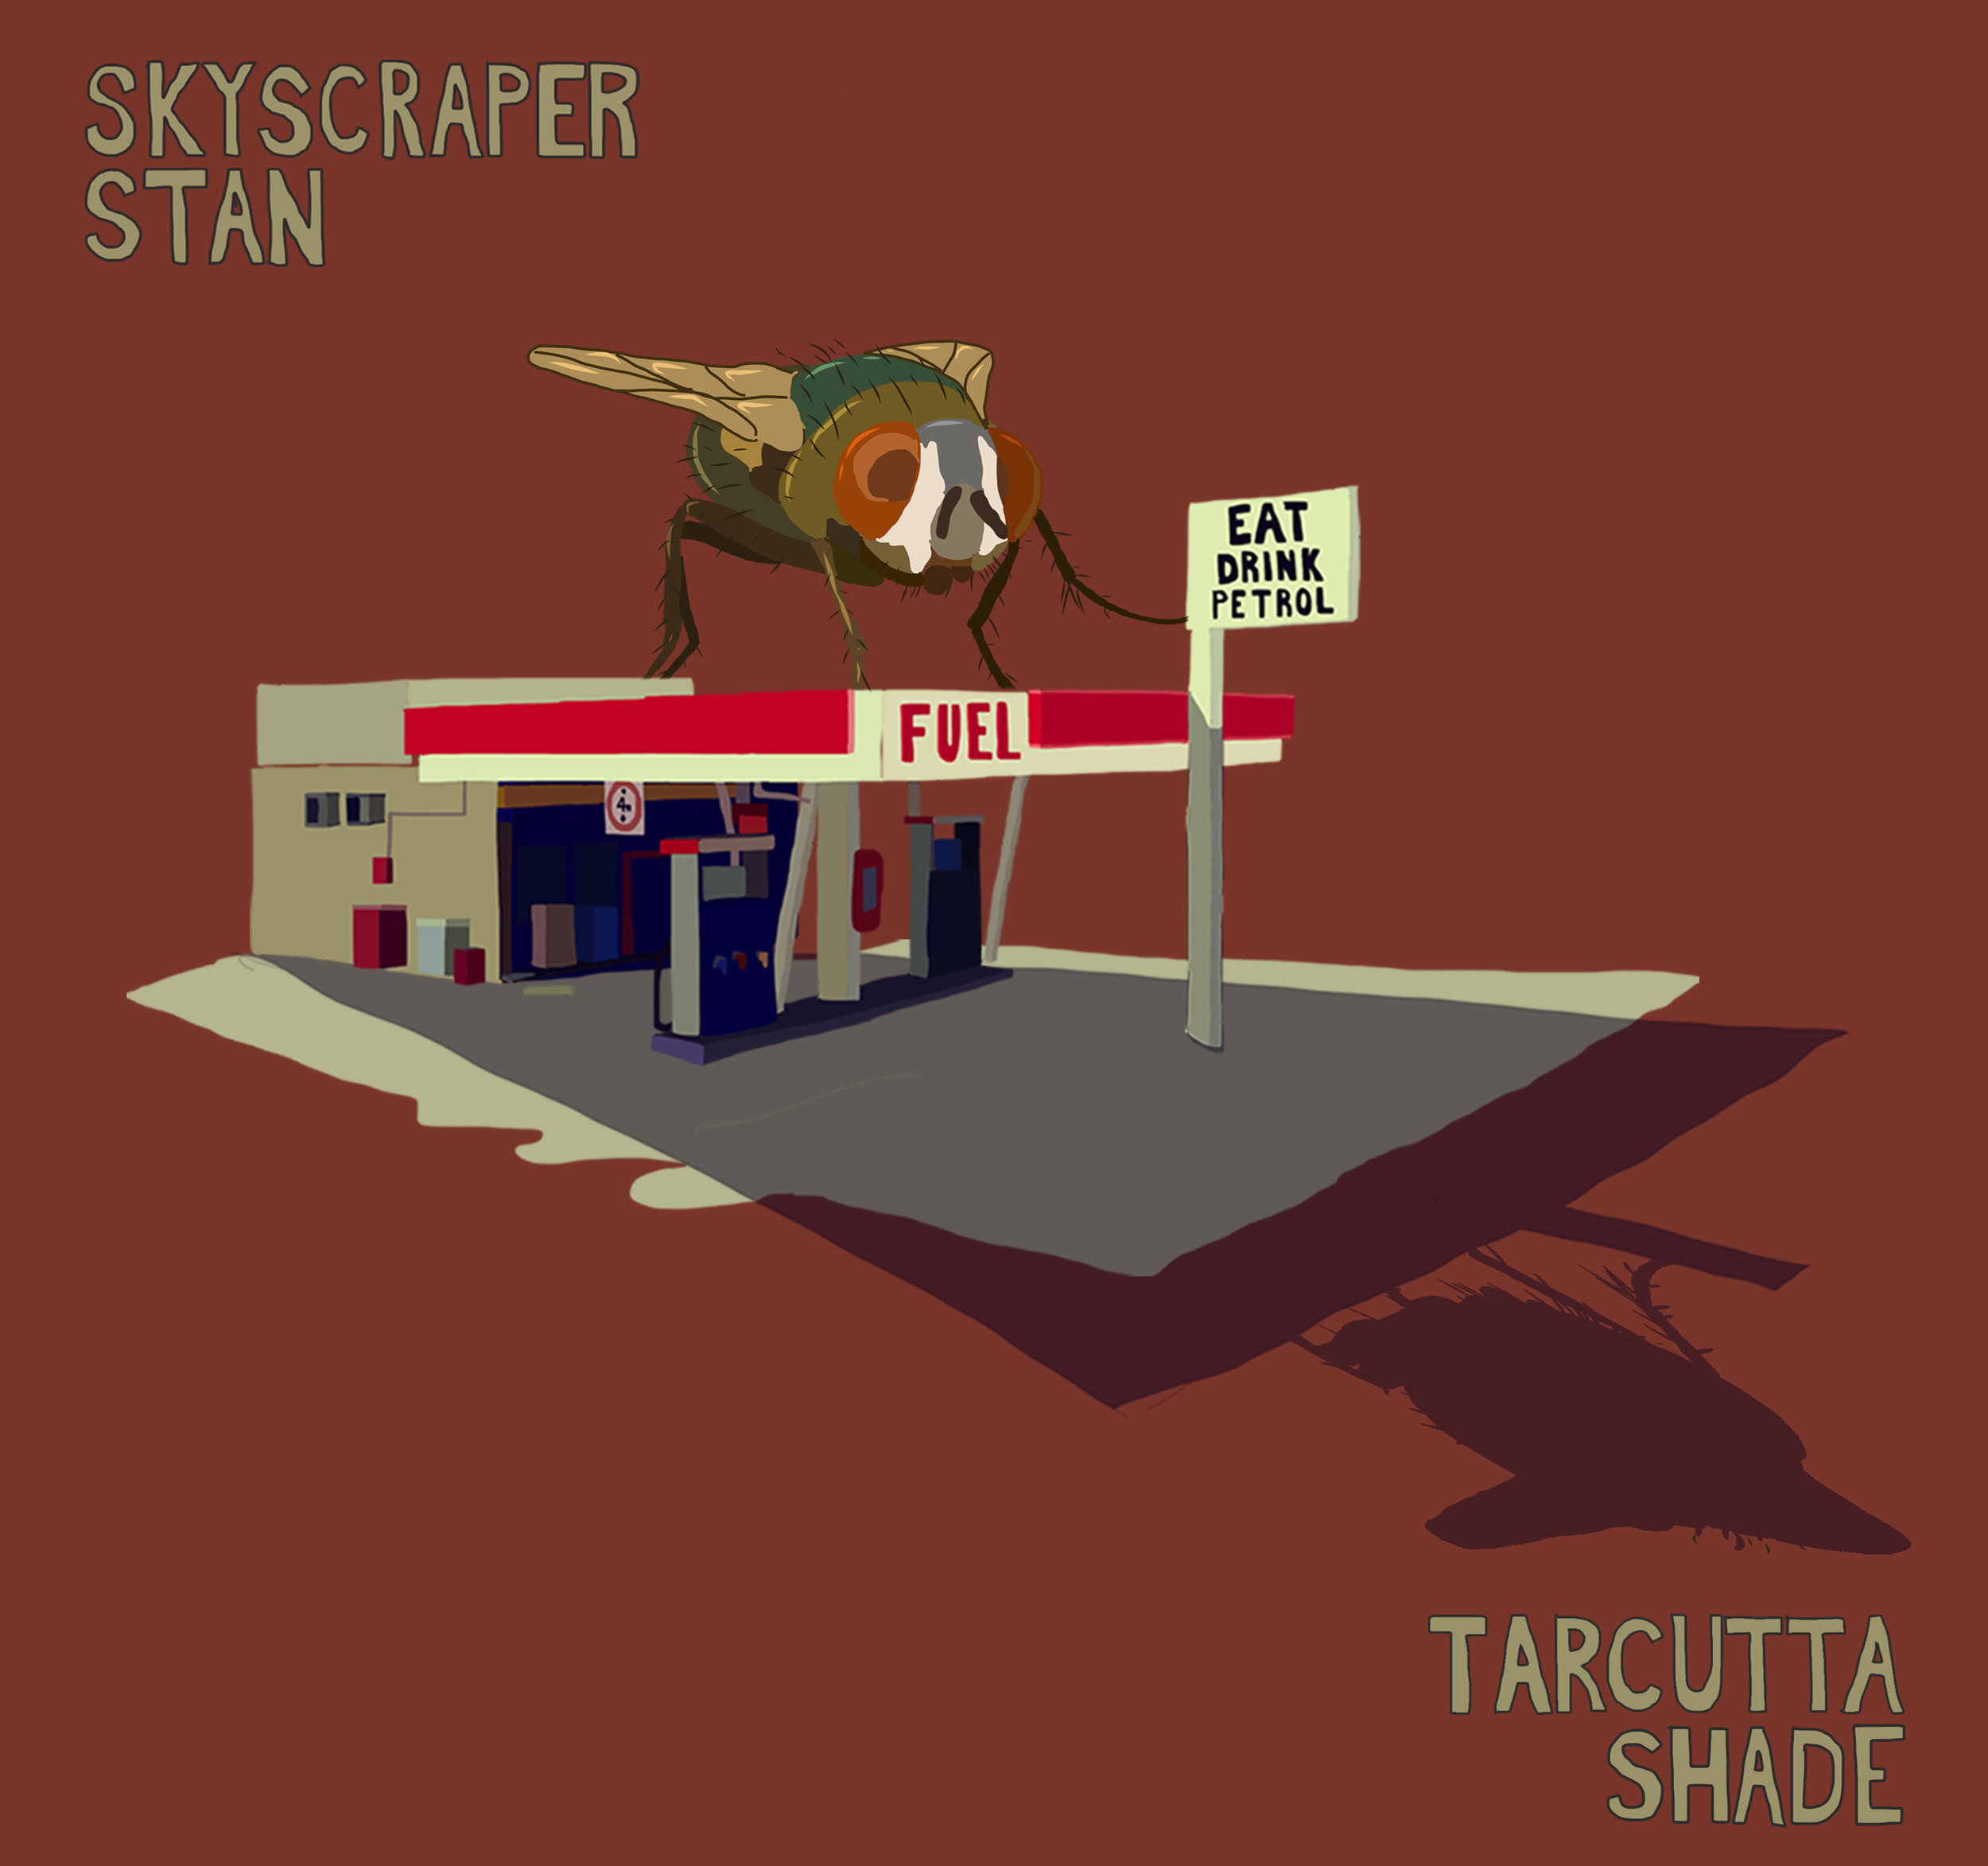 Tarcutta single artwork.jpg